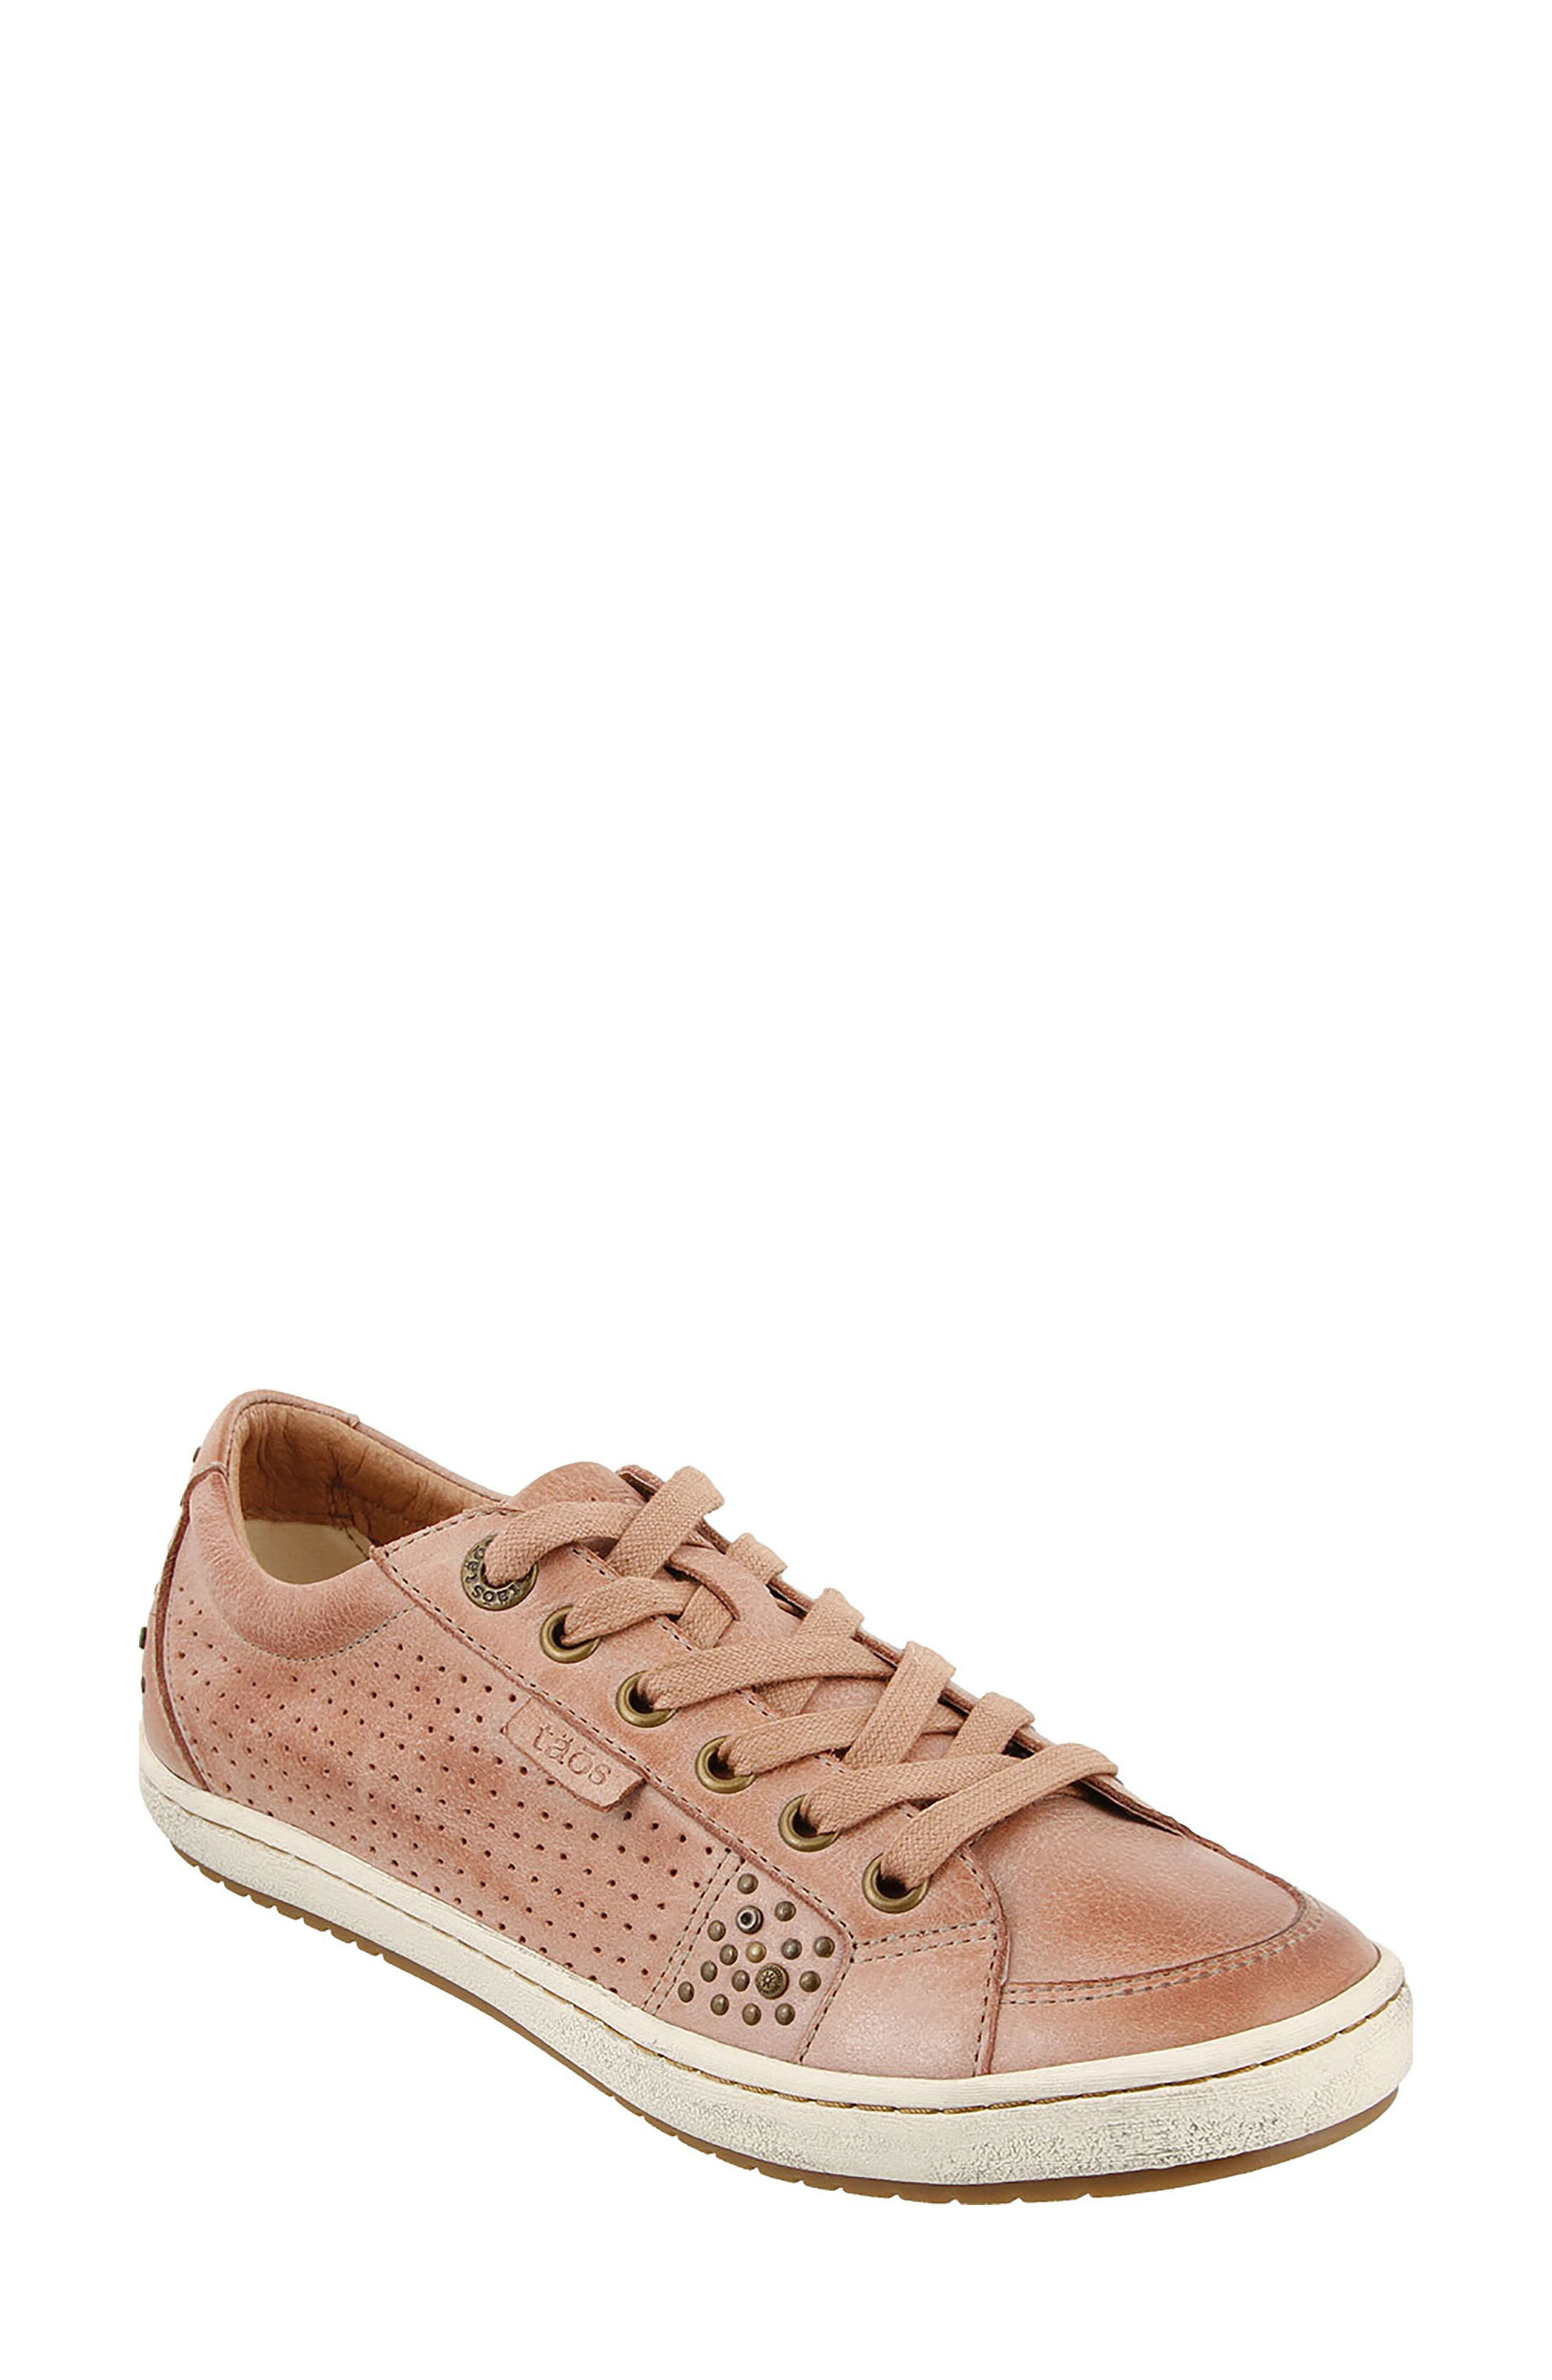 'Freedom' Sneaker,                             Main thumbnail 1, color,                             Blush Leather